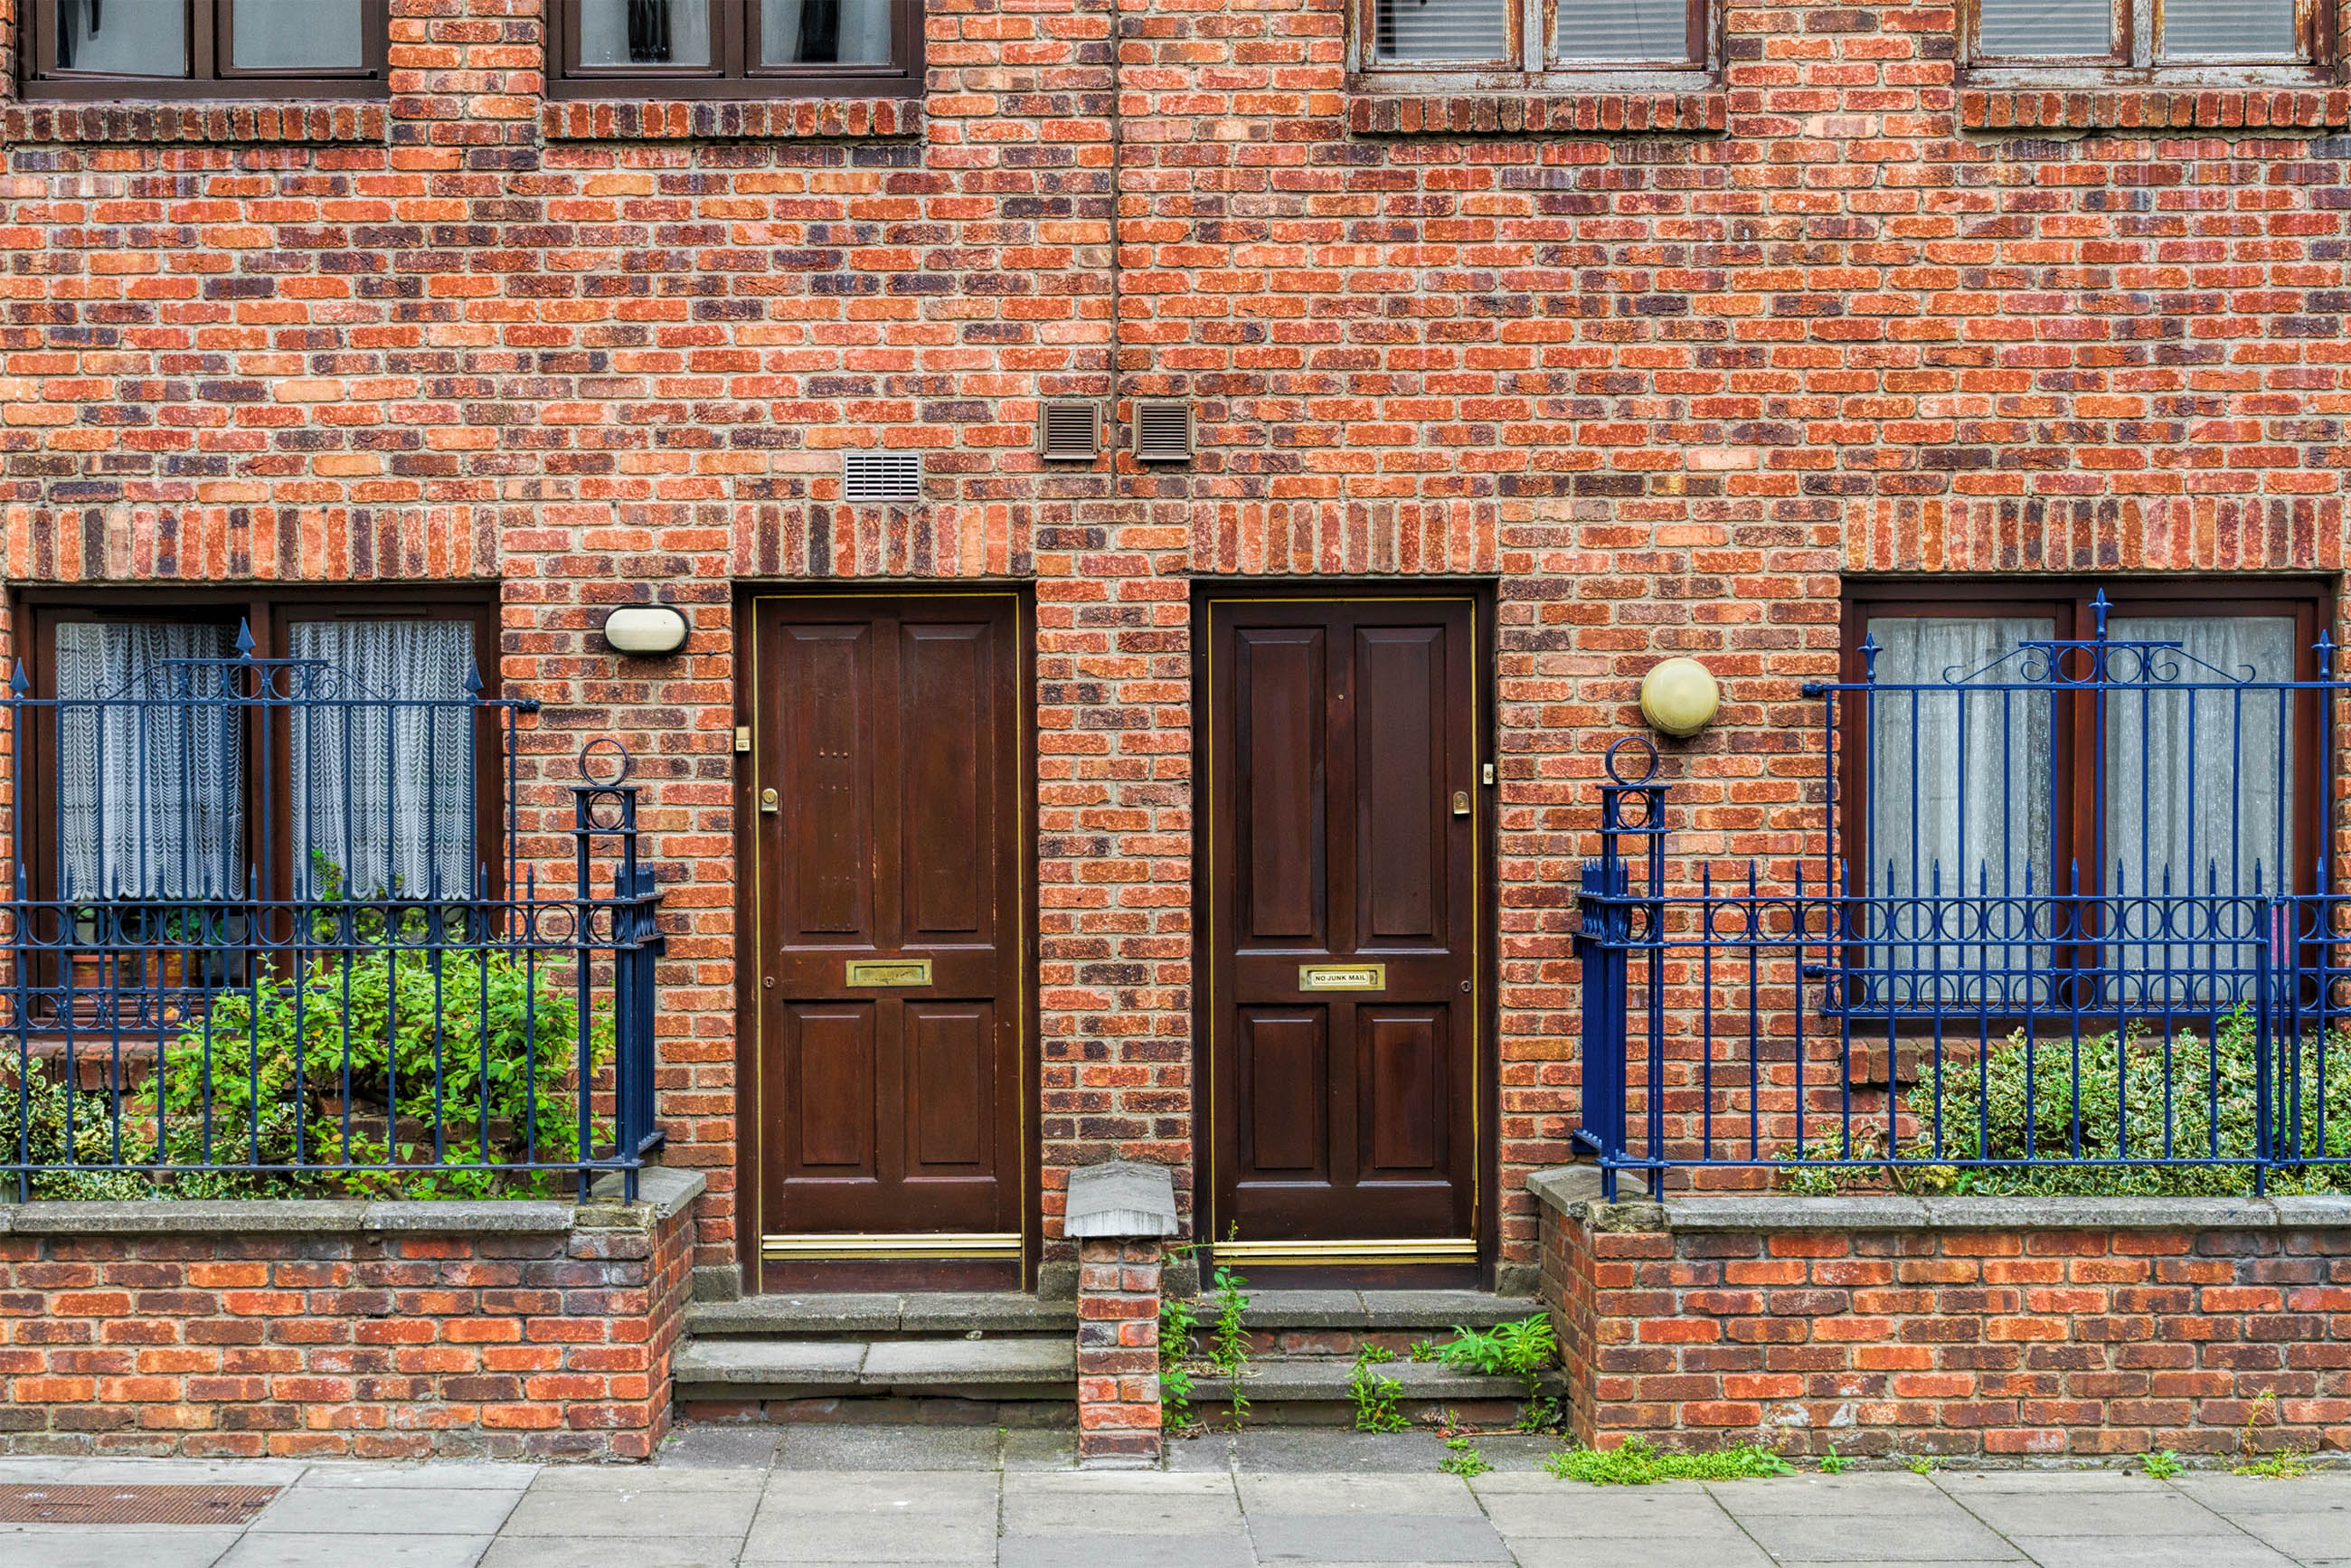 Doors in Dublin, Antique, Ornate, History, Home, HQ Photo